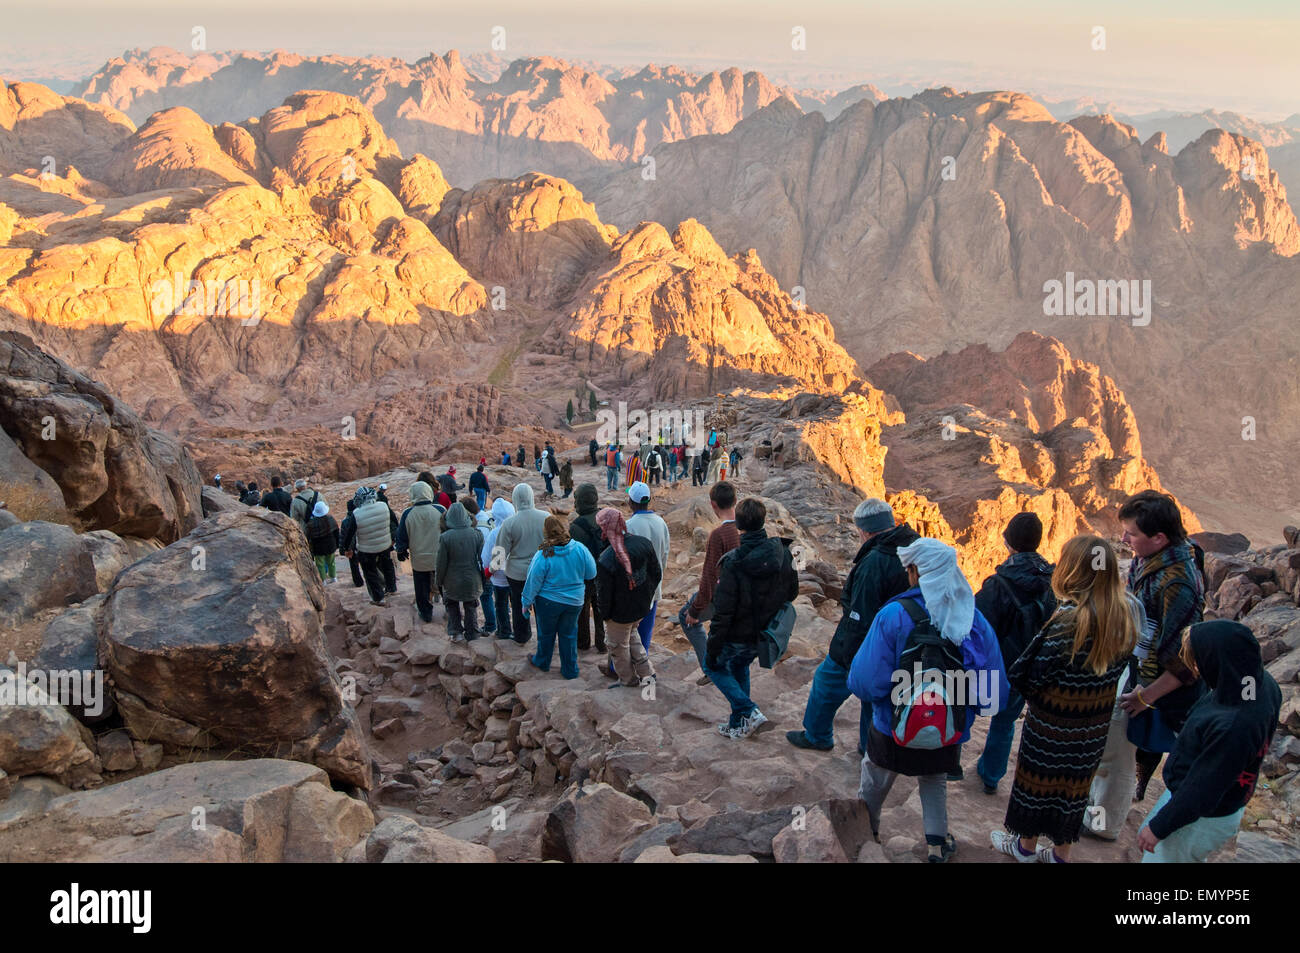 Pilgrims and tourists on the pathway from the Mount Sinai peak and panorama rocks of Mount Sinai - Stock Image